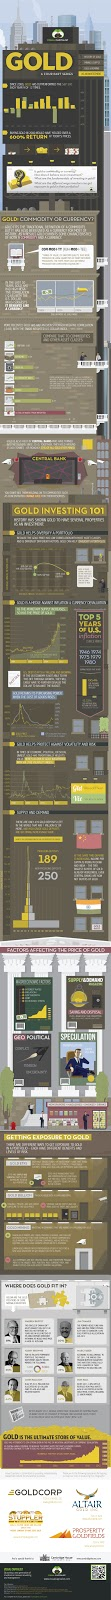 The Gold Series: Gold as an Investment